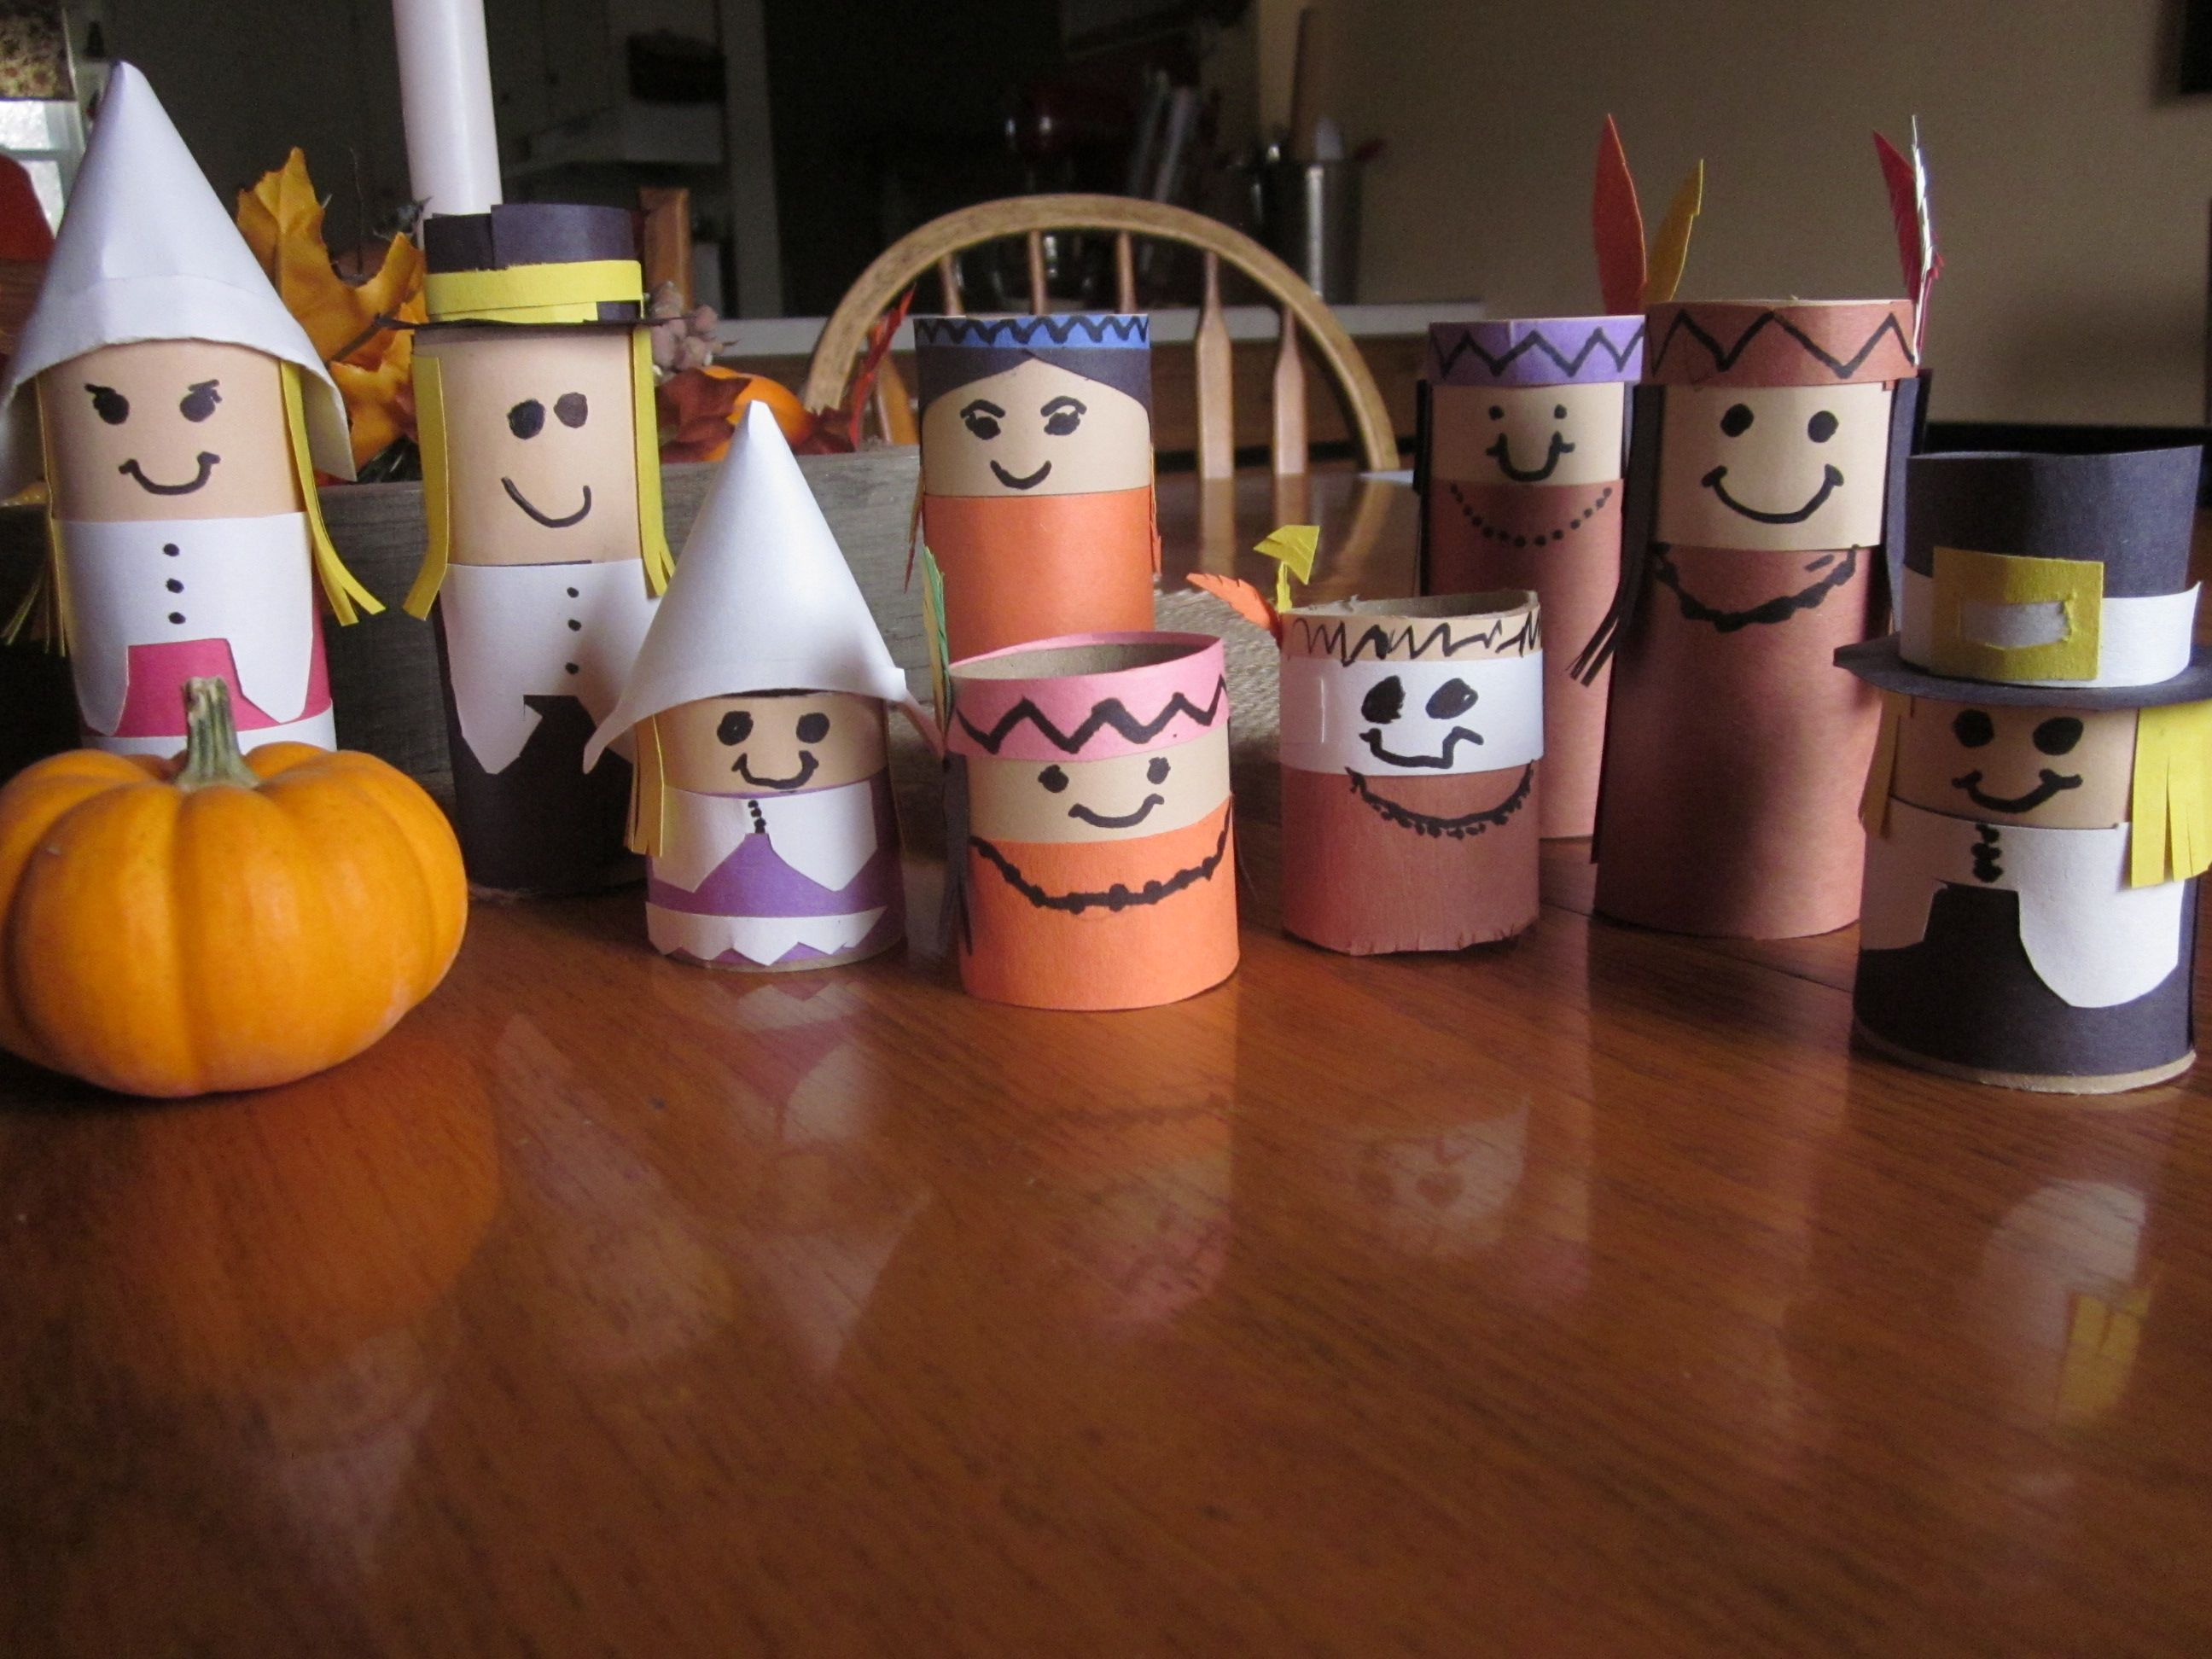 Pilgrims and Indians made from toilet paper tubes.